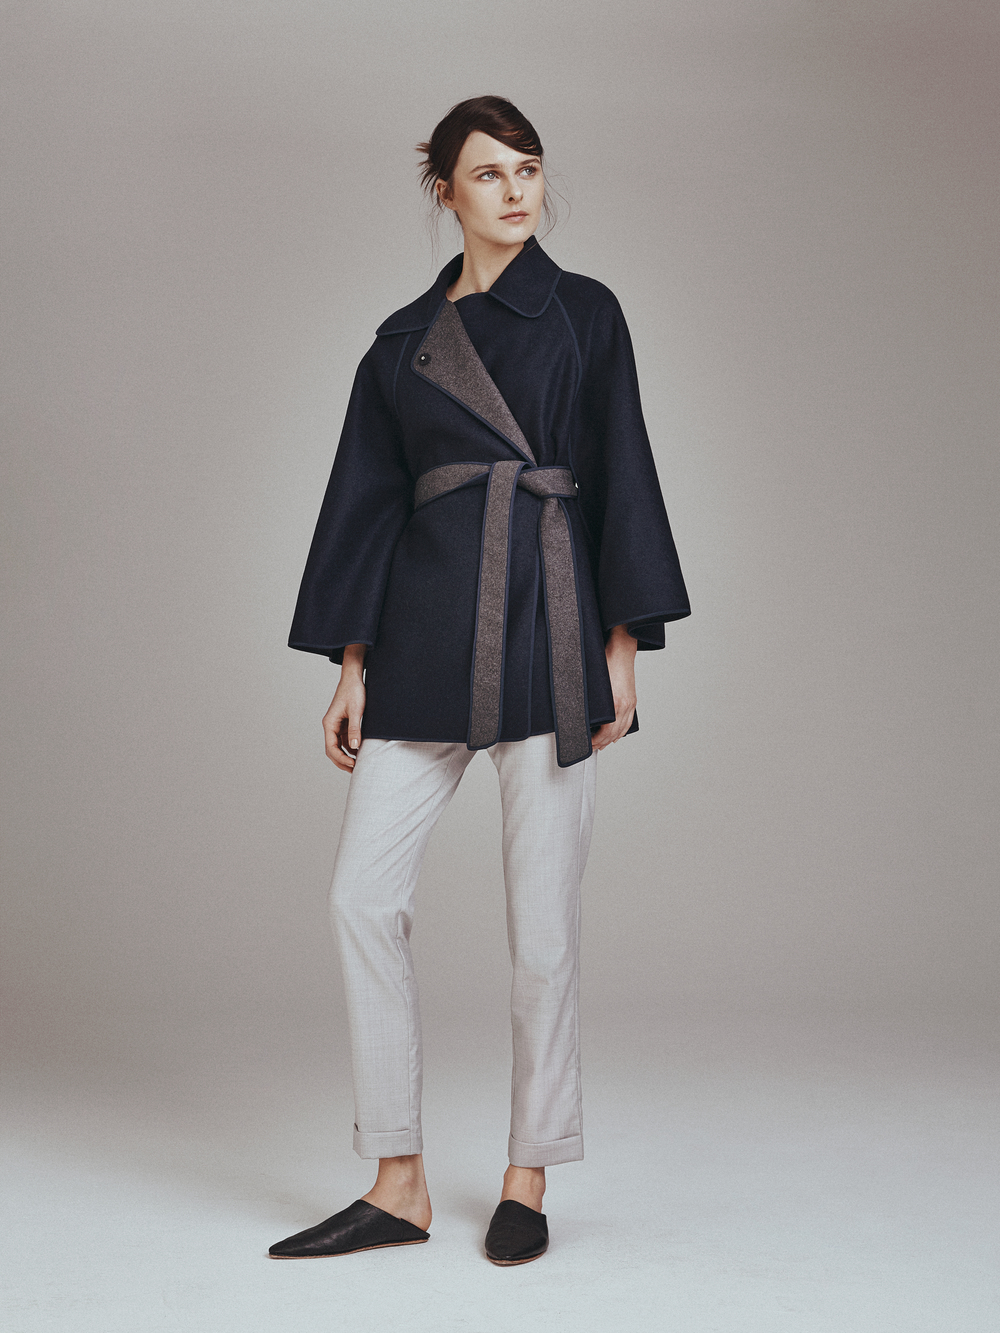 RIVER REVERSIBLE CAPE   Double Faced 100% Cashmere  -  NIXON PANTS  English Wool      Contact for inquiry